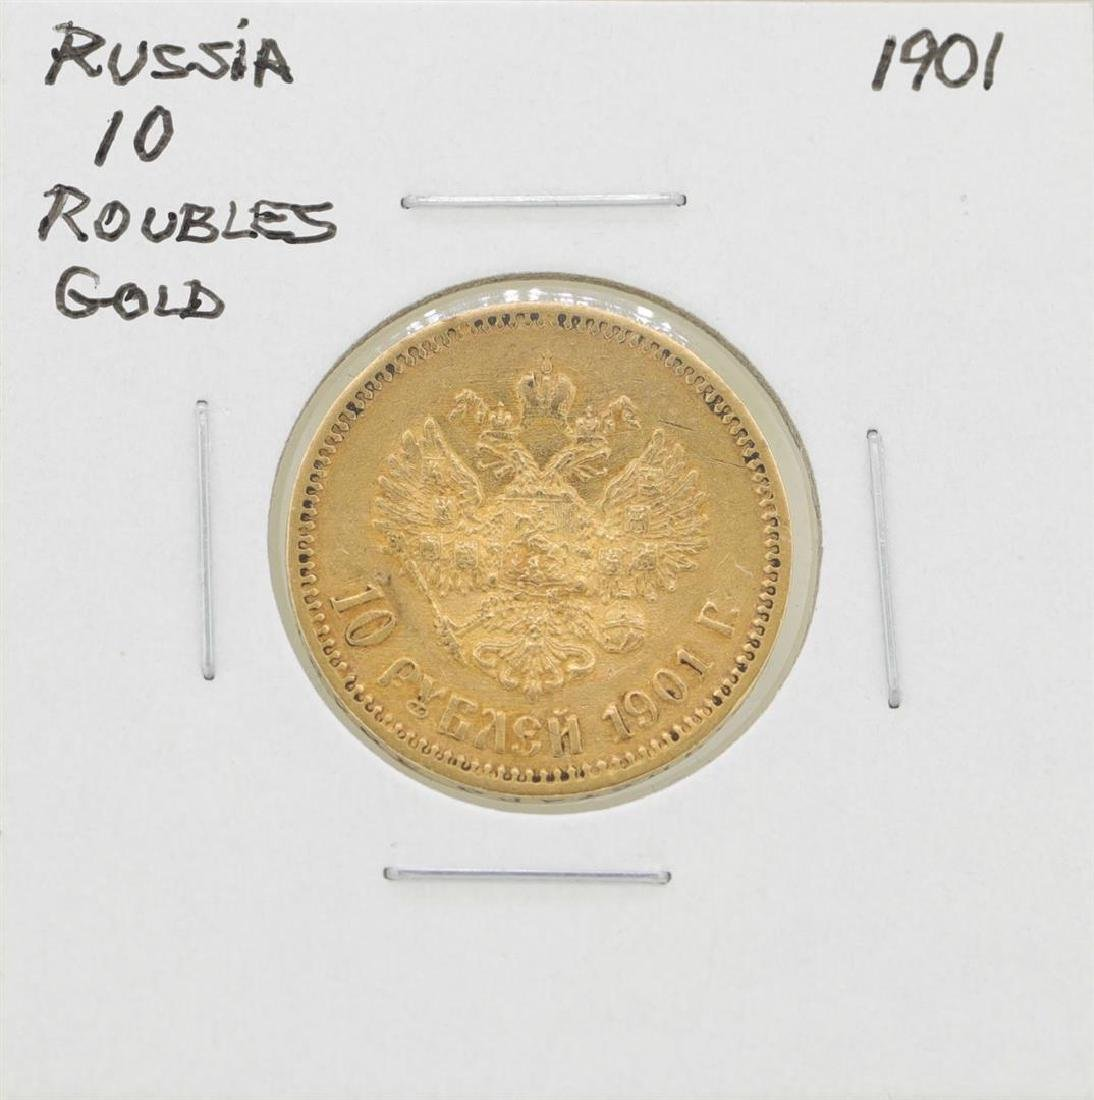 1901 Russia 10 Roubles Gold Coin